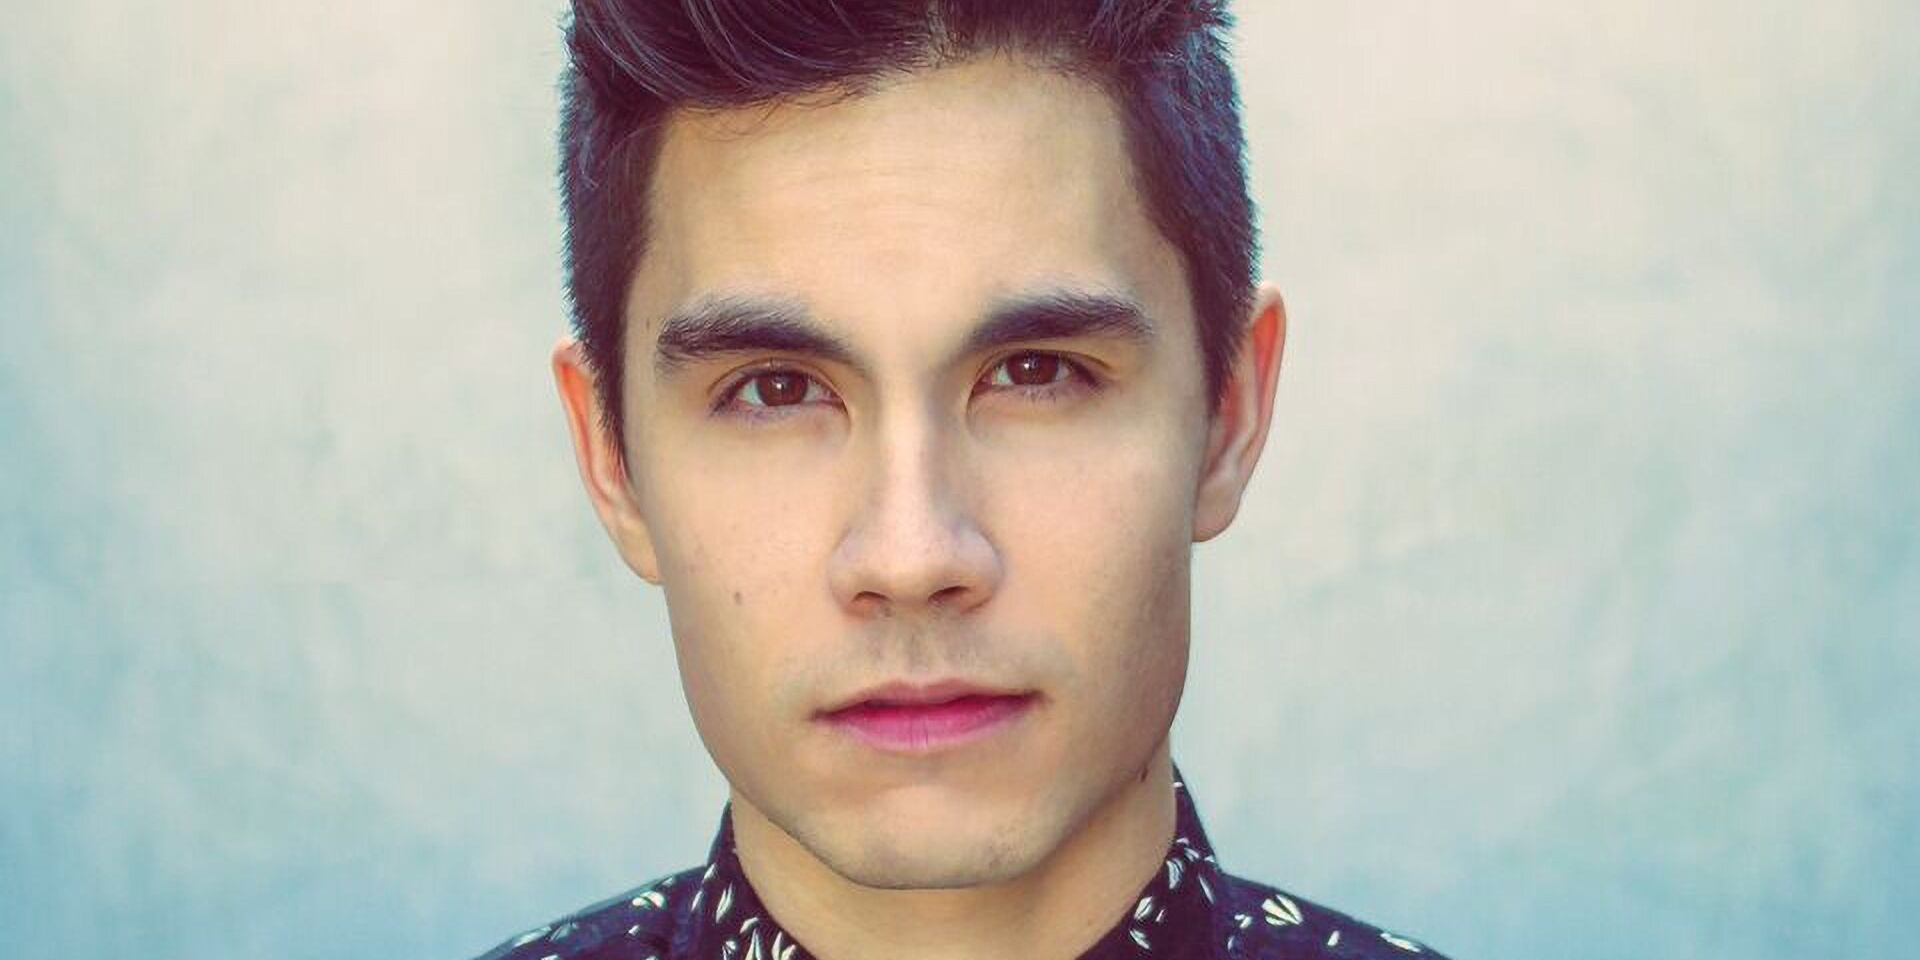 Sam Tsui returns to Asia with The Gold Jacket tour - stops include Singapore, Manila, Jakarta, and many more